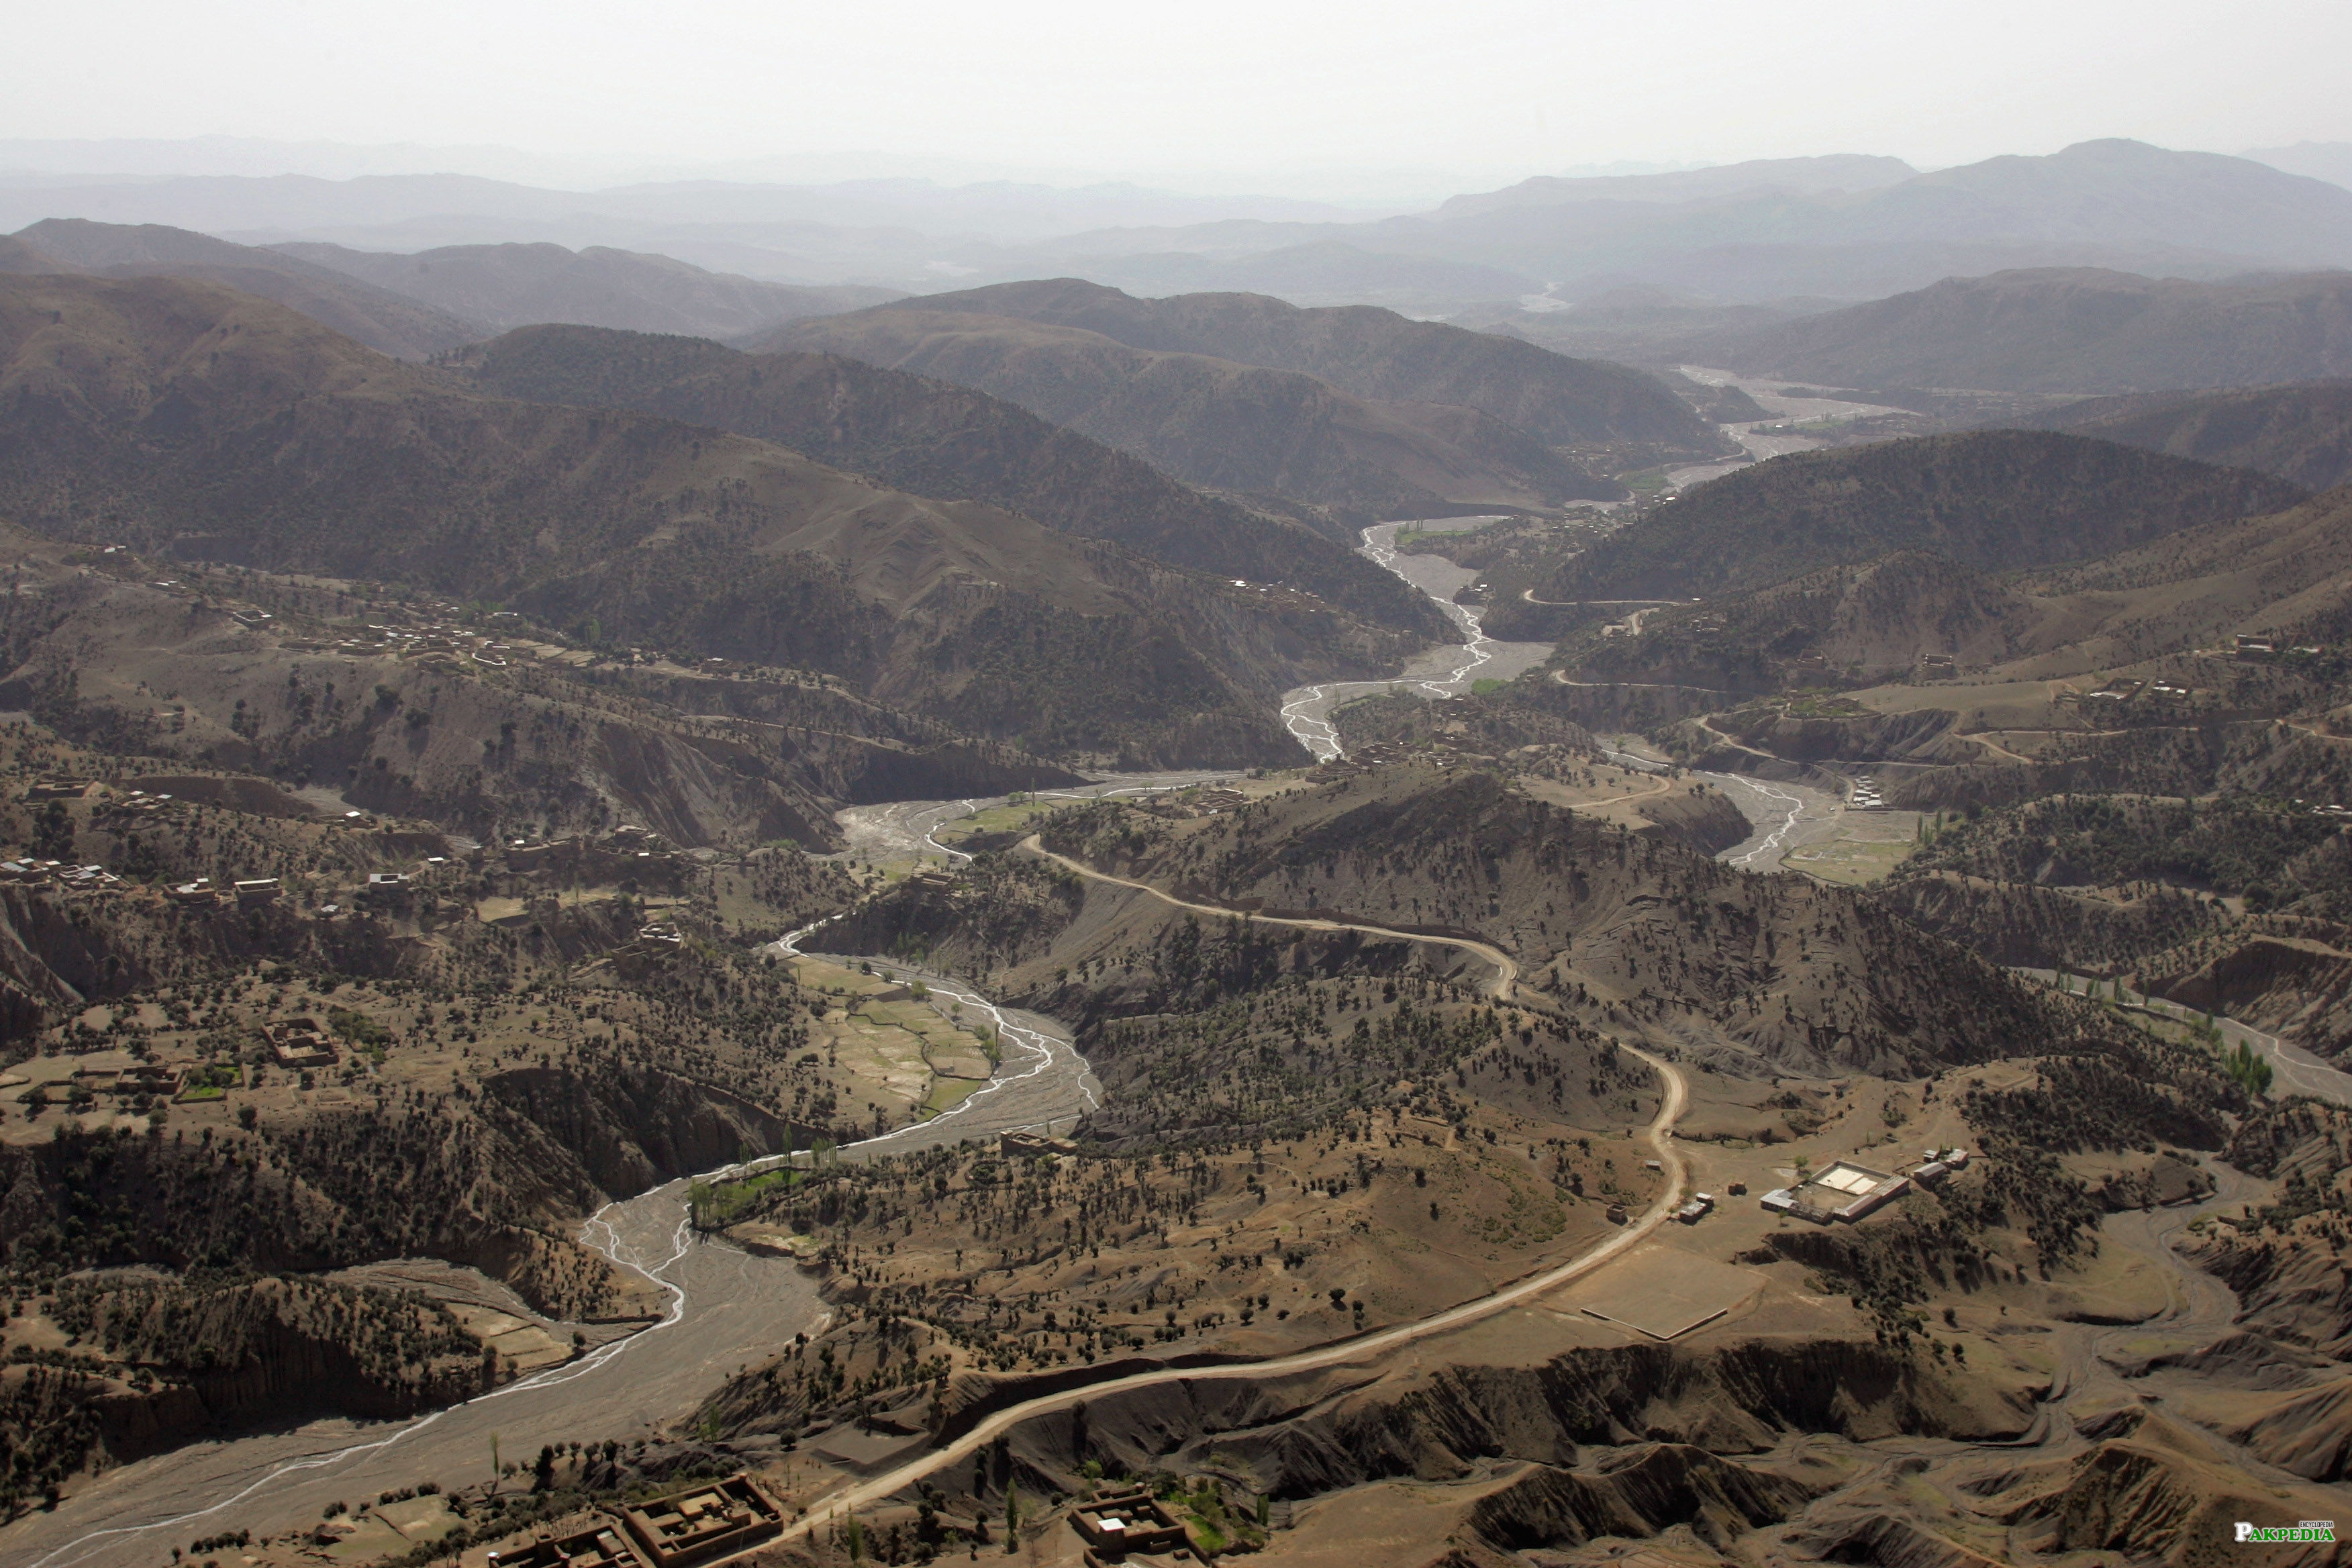 Over view of South Waziristan